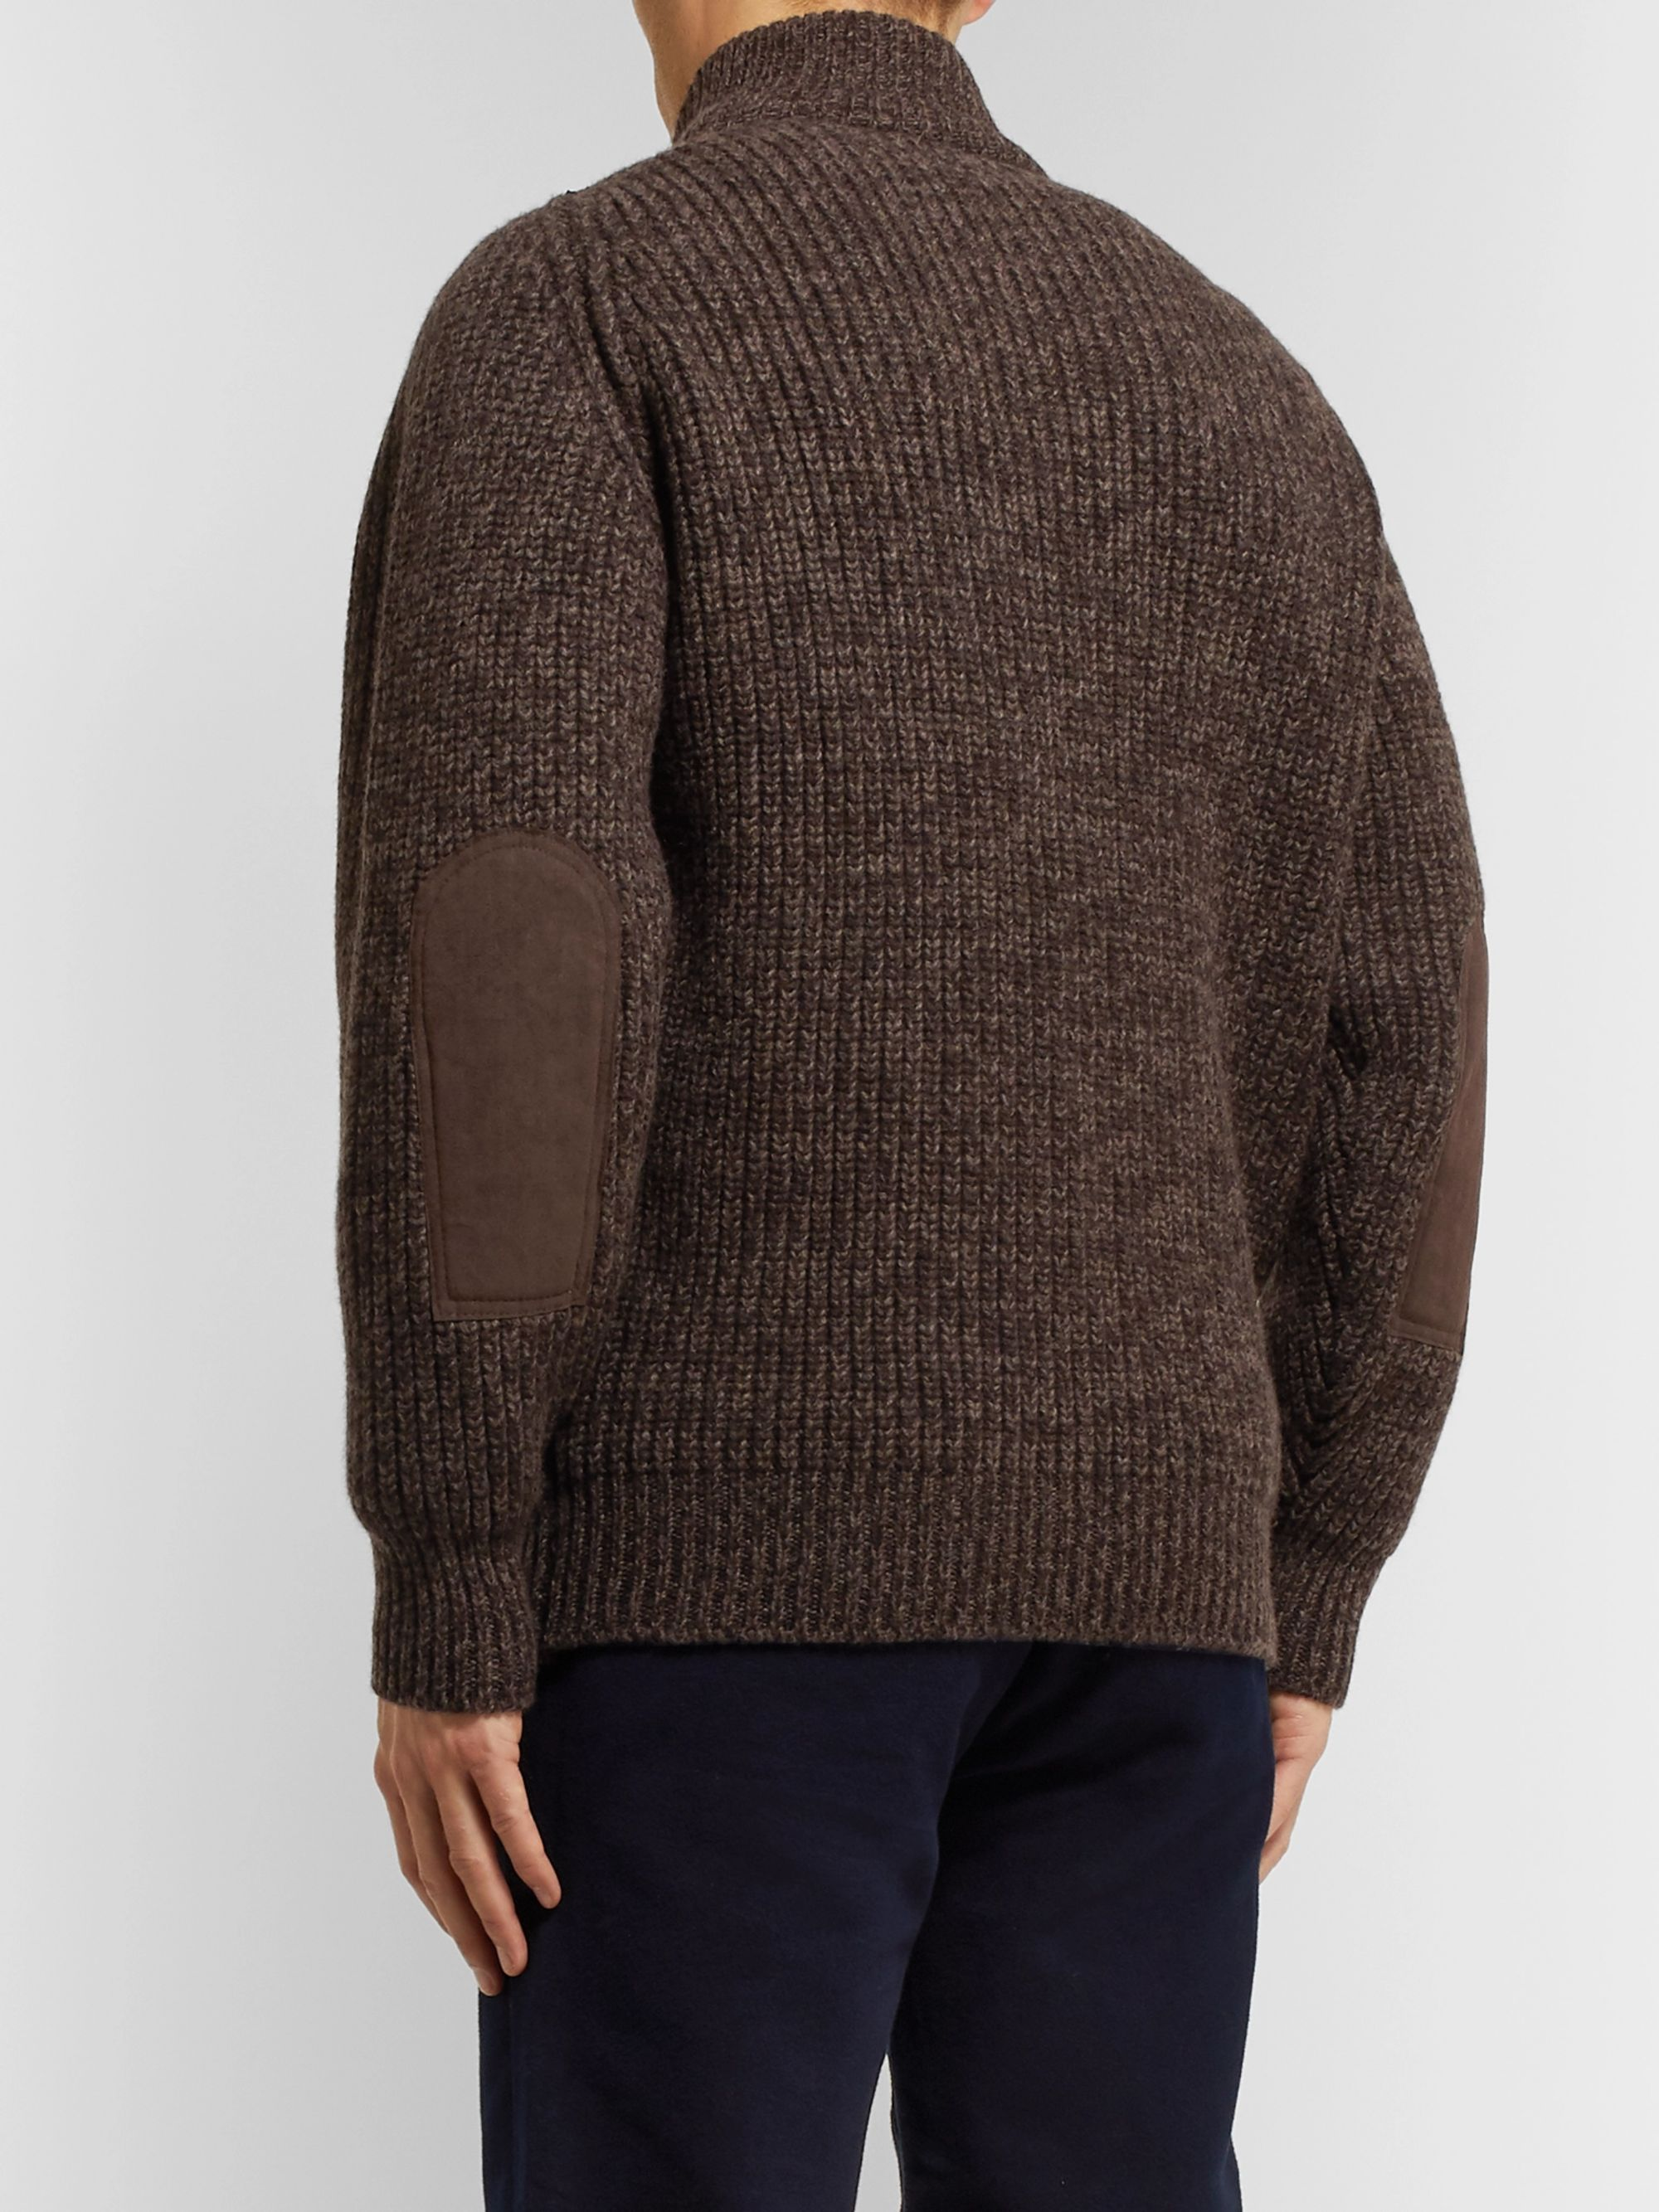 Purdey Suede-Trimmed Ribbed Wool Zip-Up Sweater